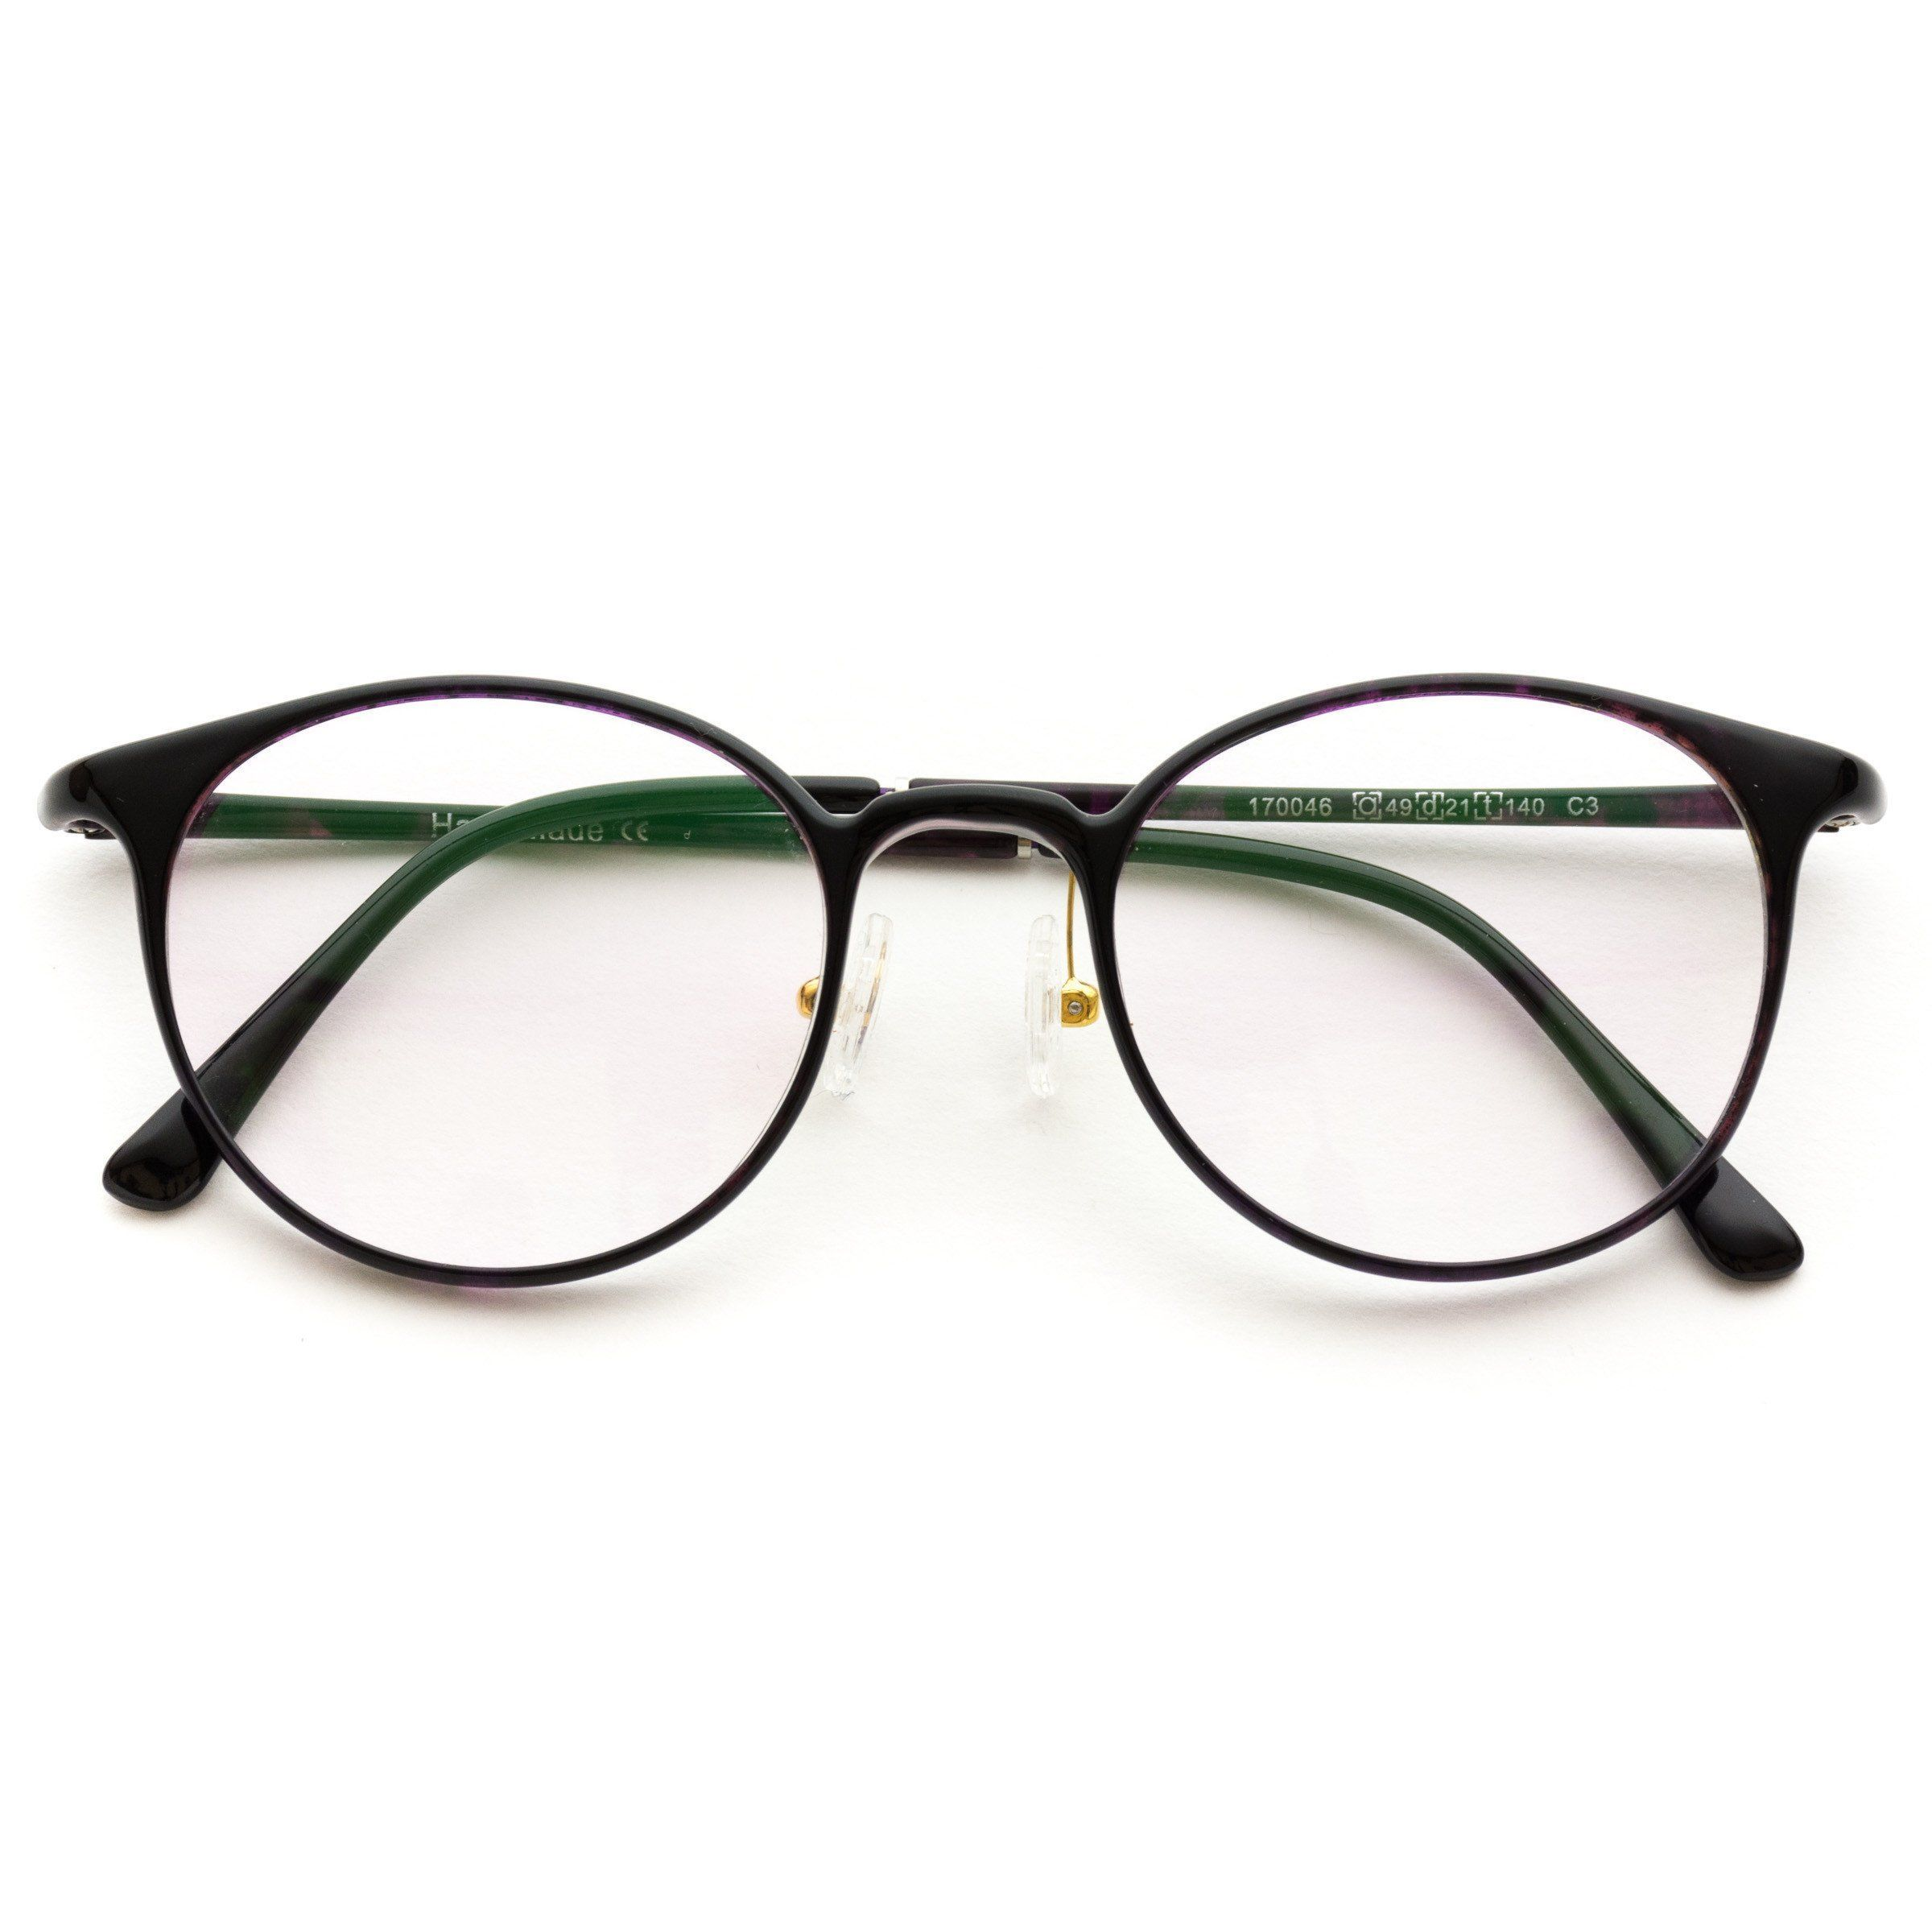 372d56c8e8 Aad Retro Thin Frame Clear Lens Glasses